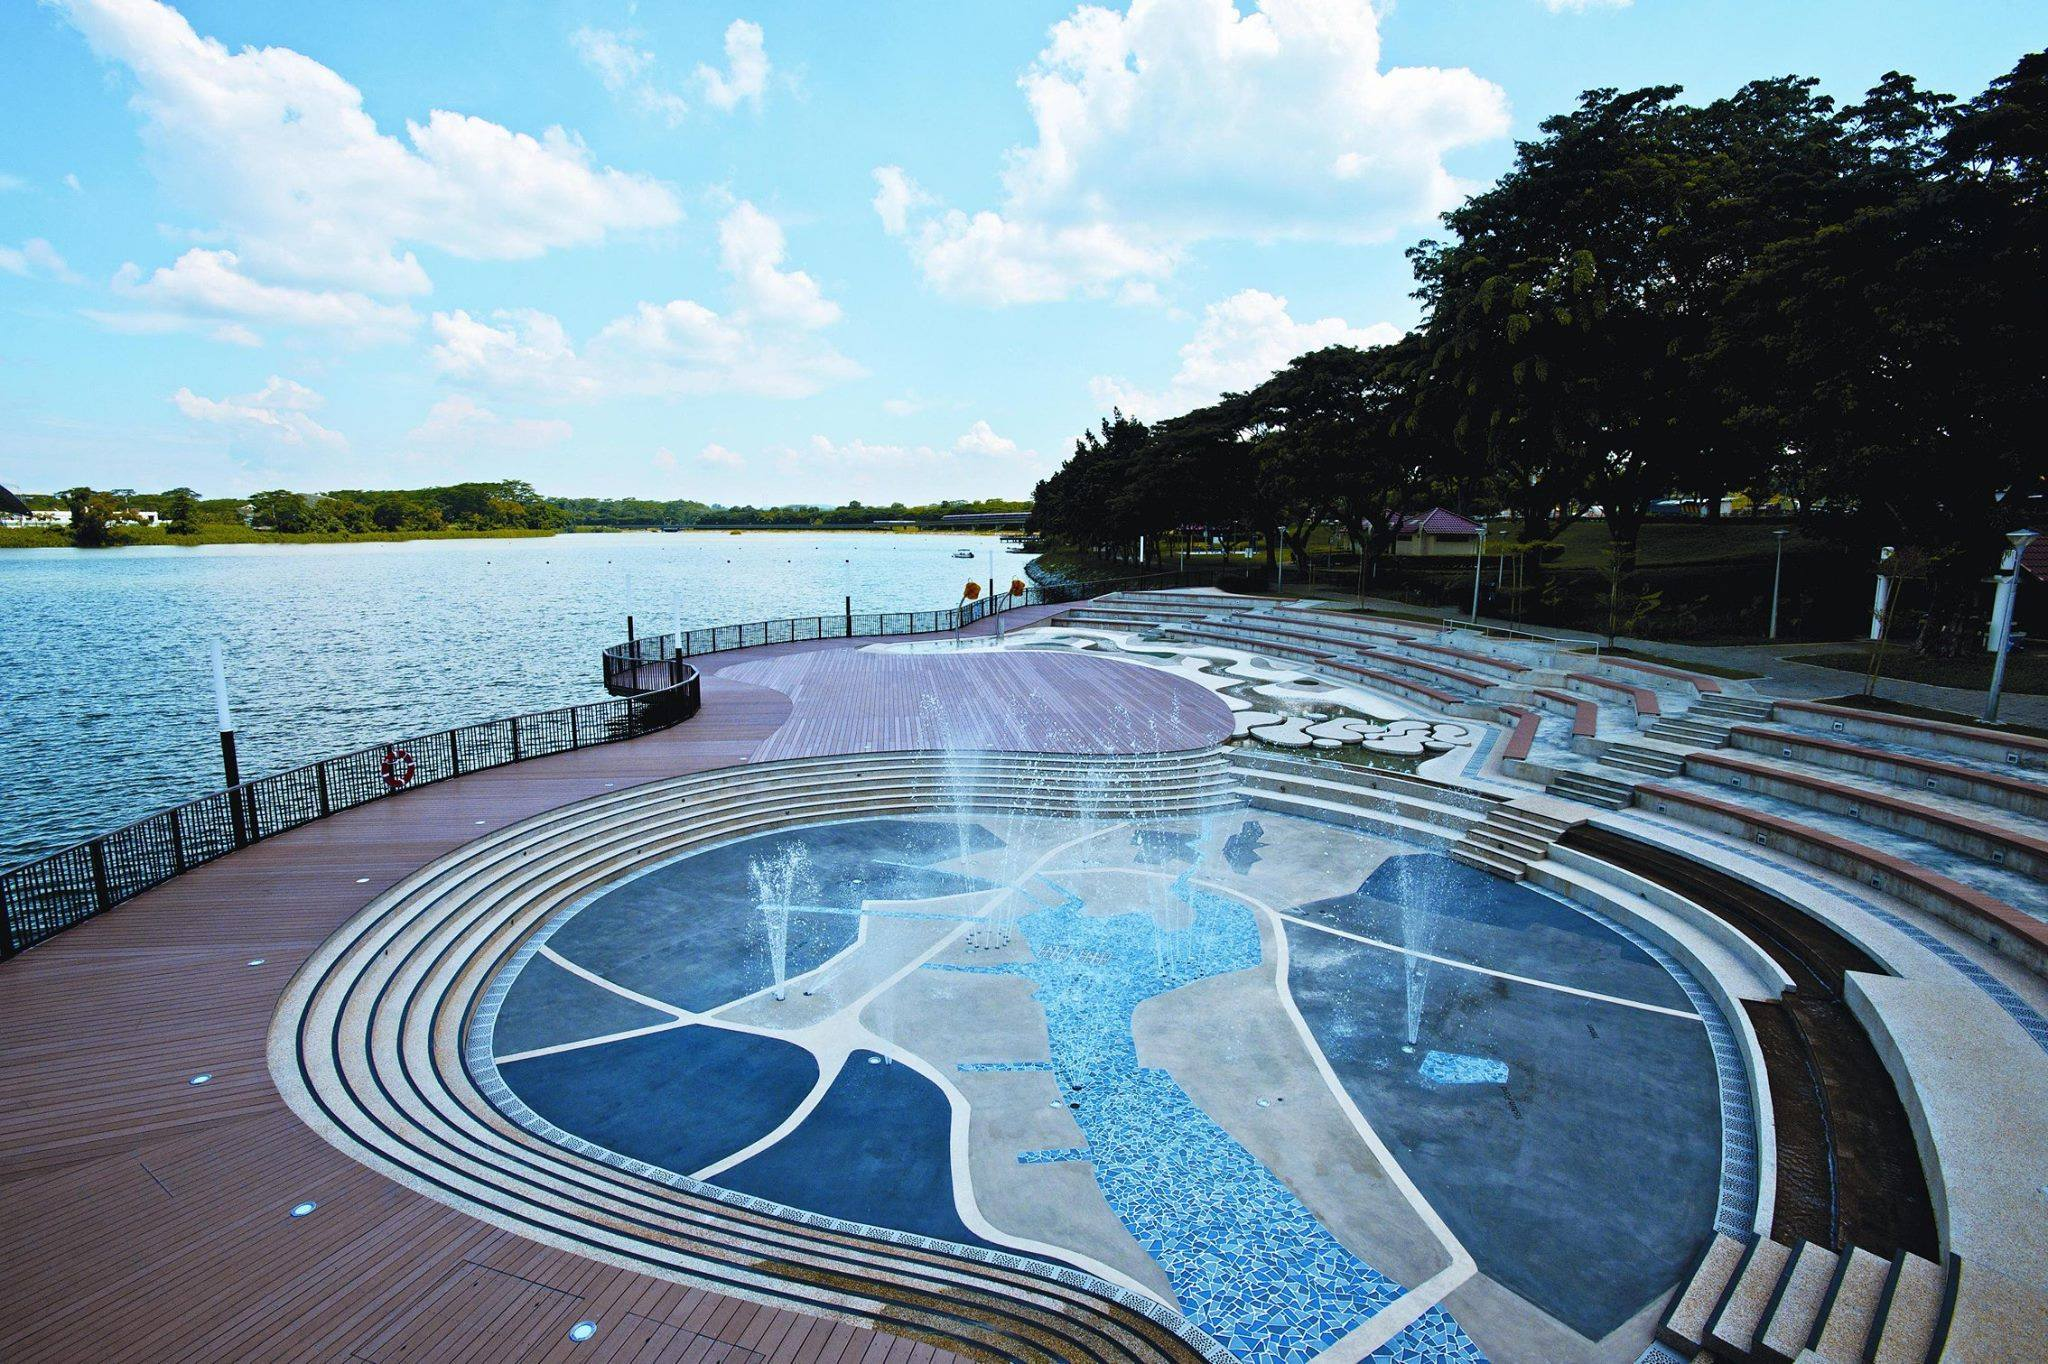 20210323-Lower Seletar Reservoir.jpg